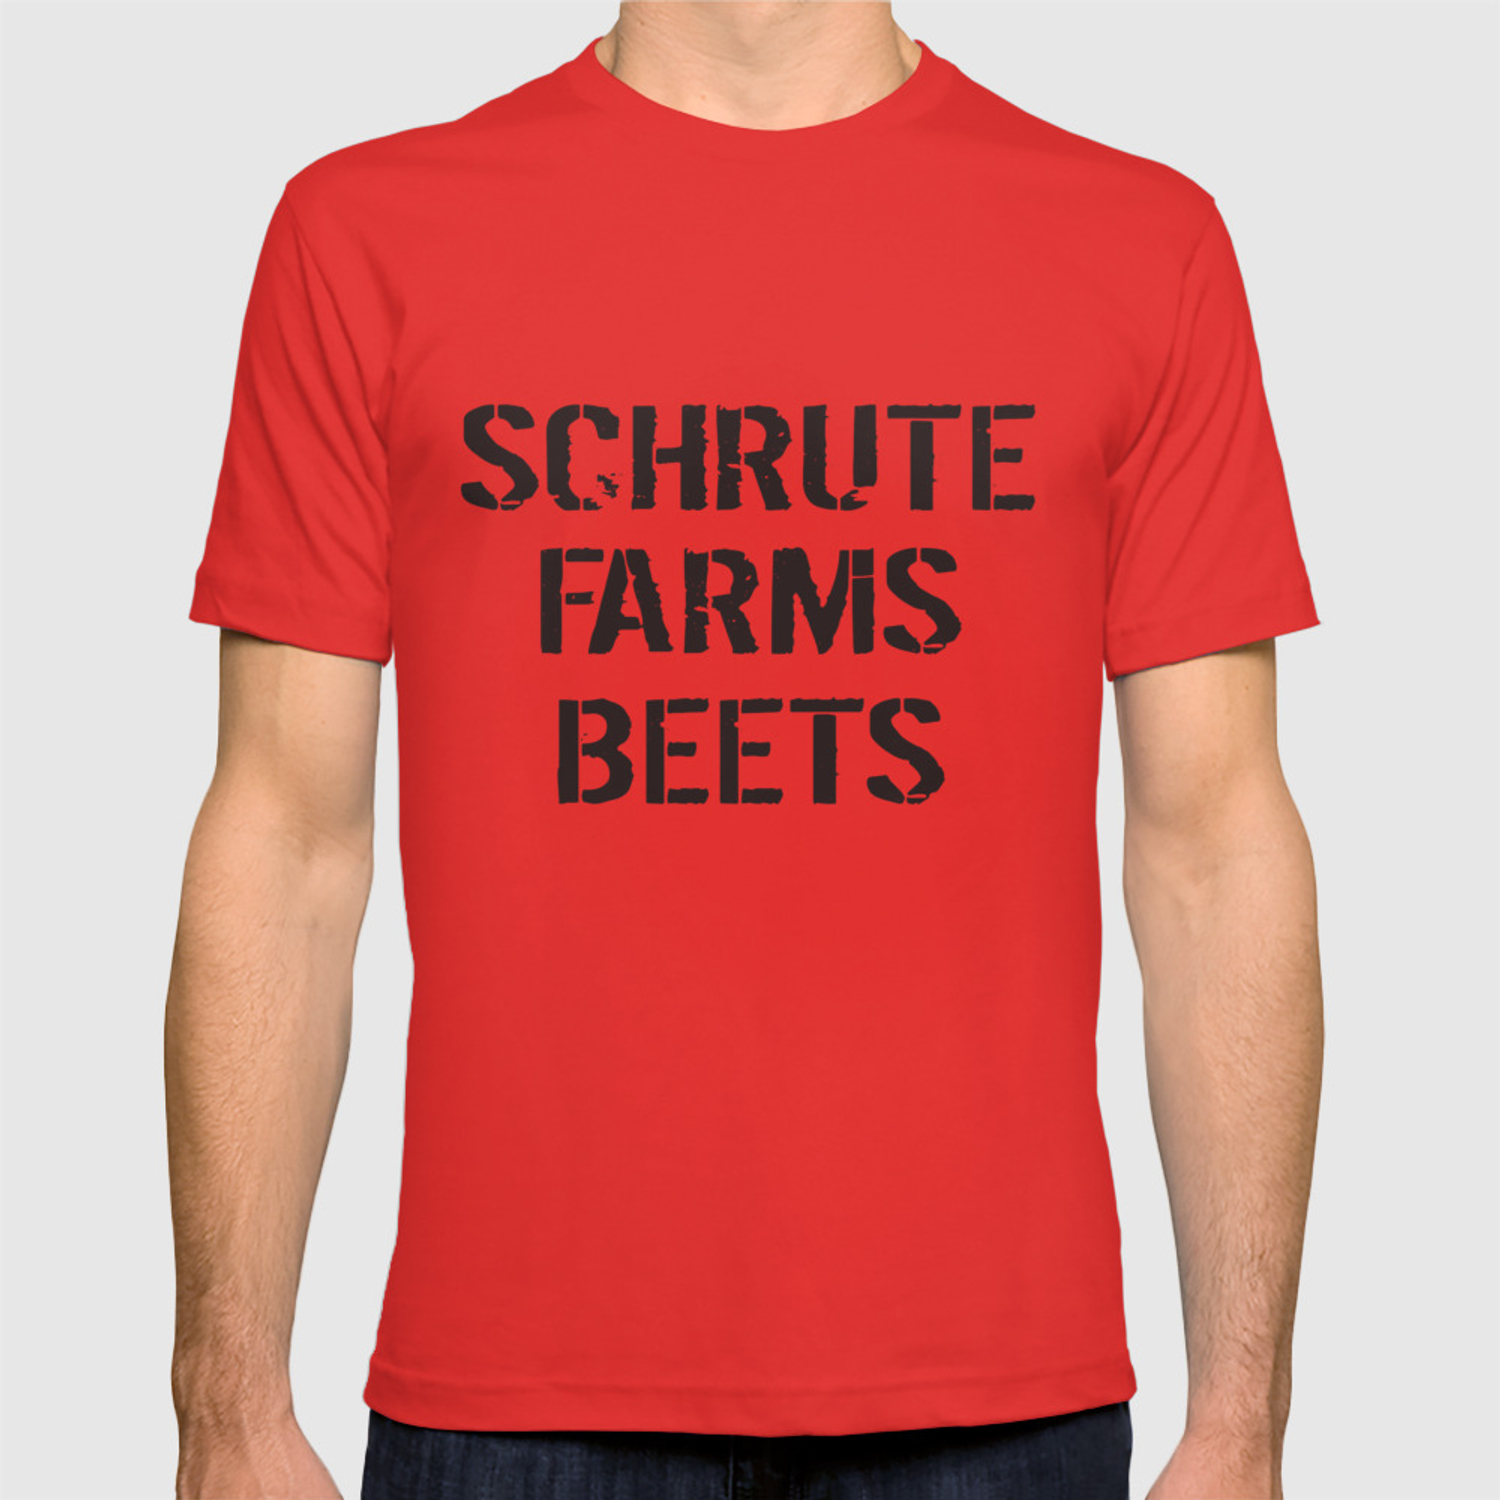 03f7d4be8 Schrute Farms Beets Adult Funny Humor Tv Countryside Dwight Farm T-shirt by  alberthahegwood | Society6